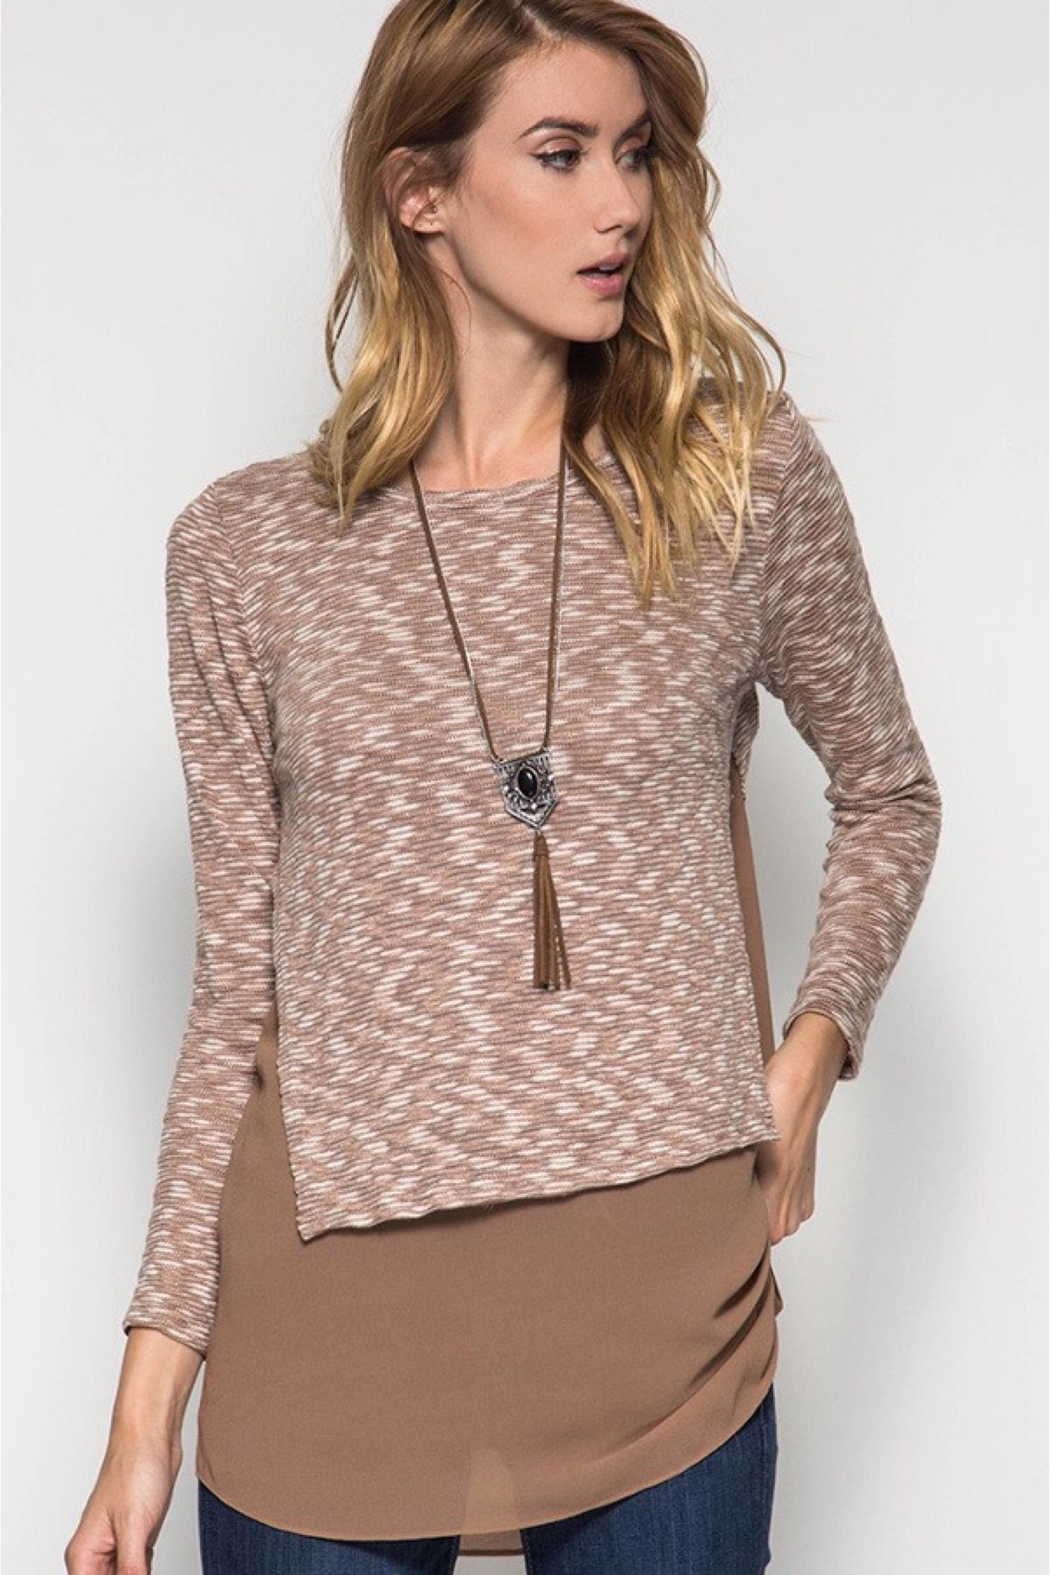 People Outfitter Taupe  Knit Tunic Top - Main Image